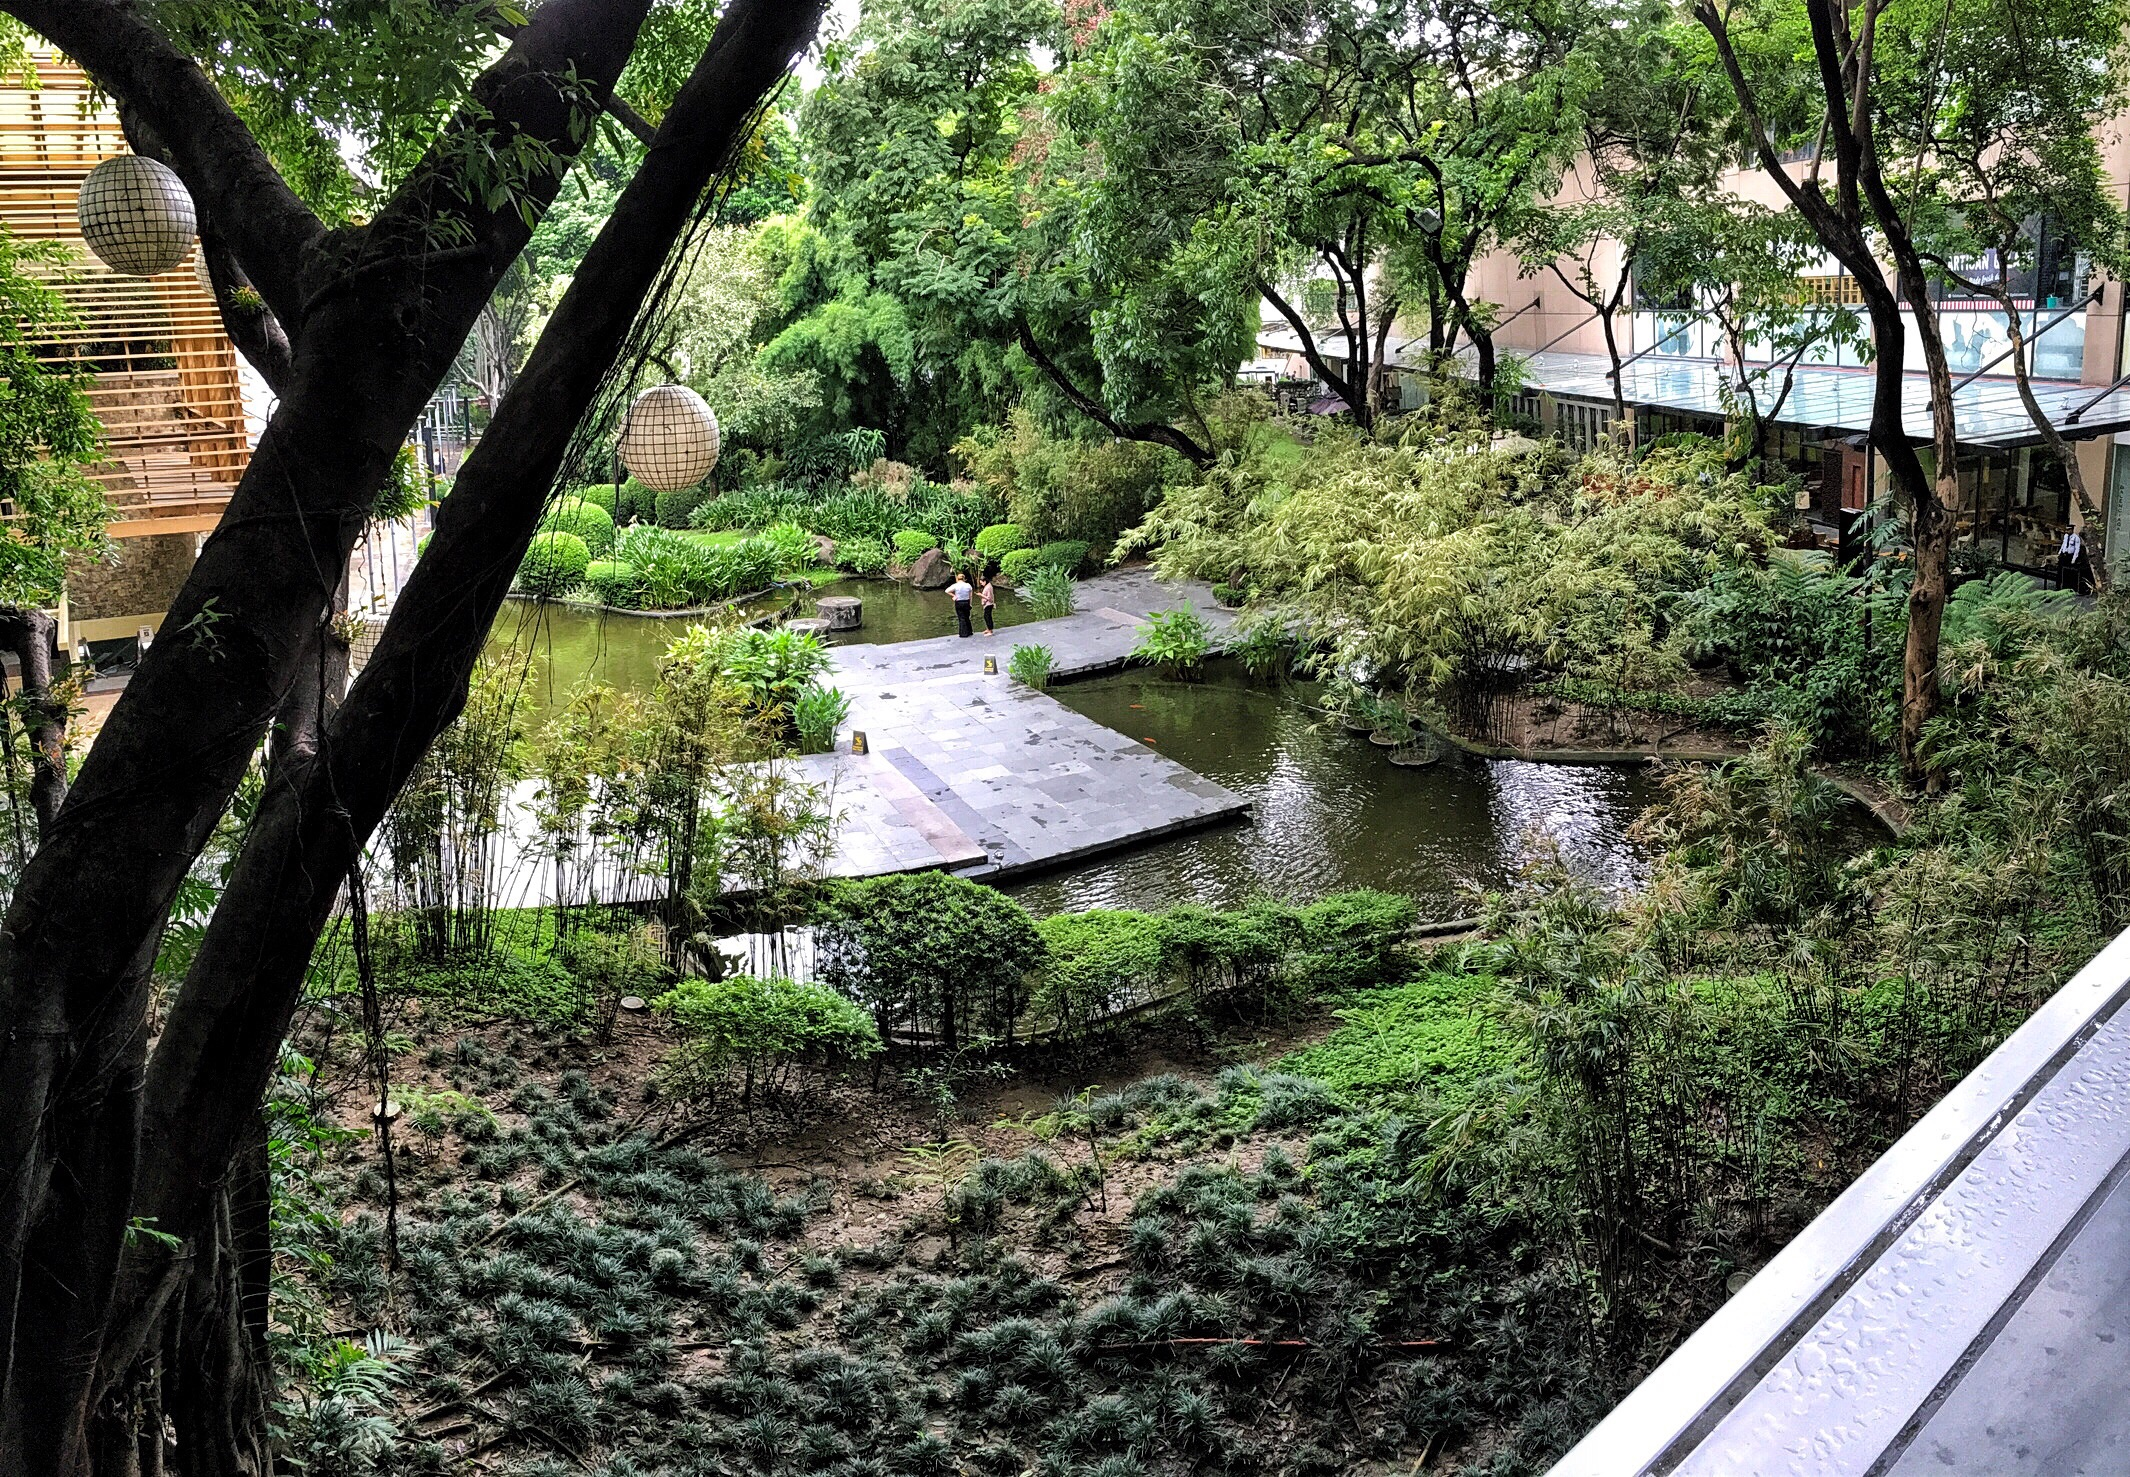 Enjoying some down time leading up to the APCC convention here in the Philippines. A view of the koi ponds,.. part of the Greenbelt Shops across from my hotel here in Makati.